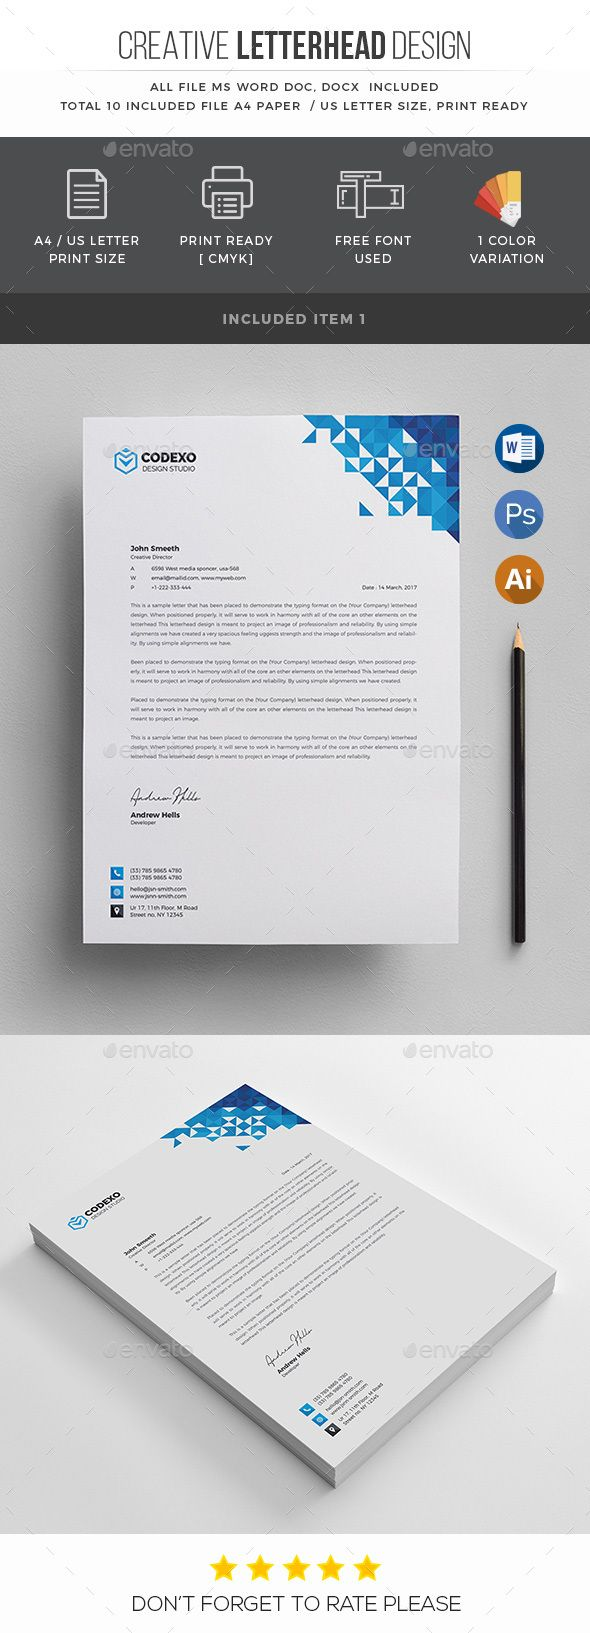 8 best letterhead design images on pinterest letterhead template letterhead template by generousart spiritdancerdesigns Choice Image